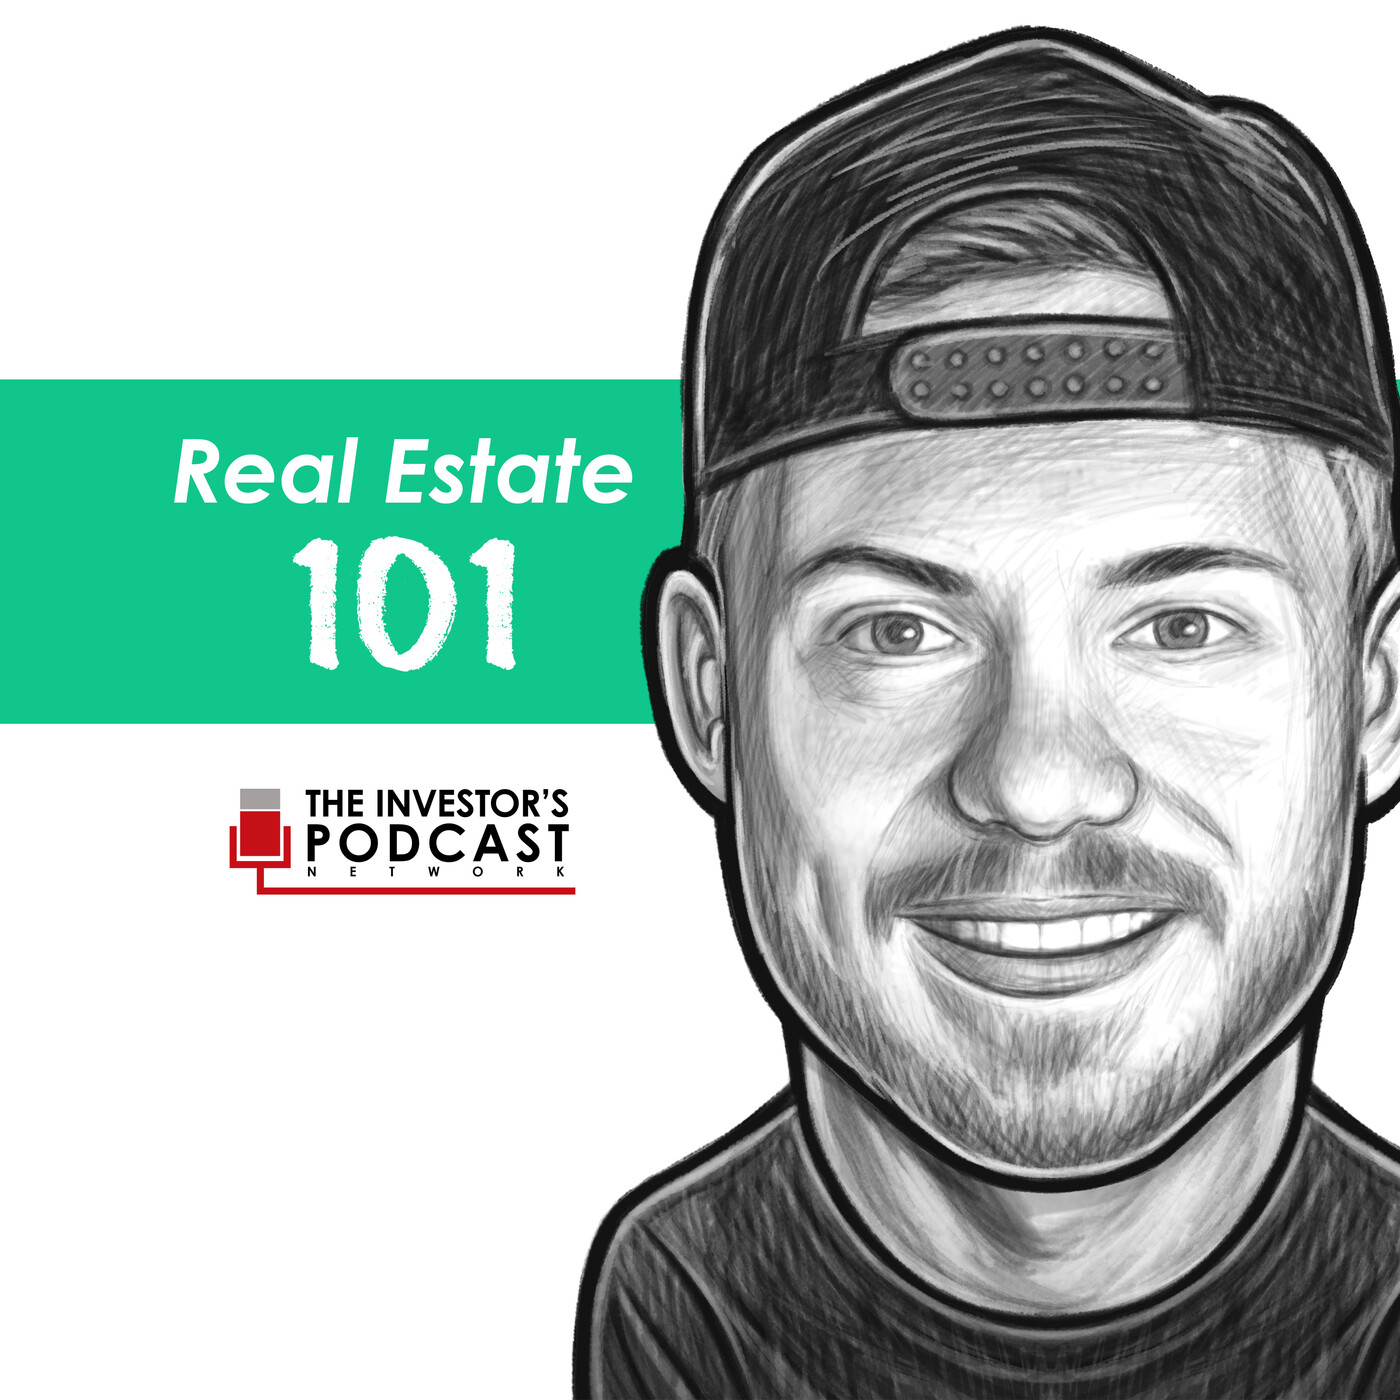 REI040: Creating Growth in Real Estate through Networking with Willie Mandrell